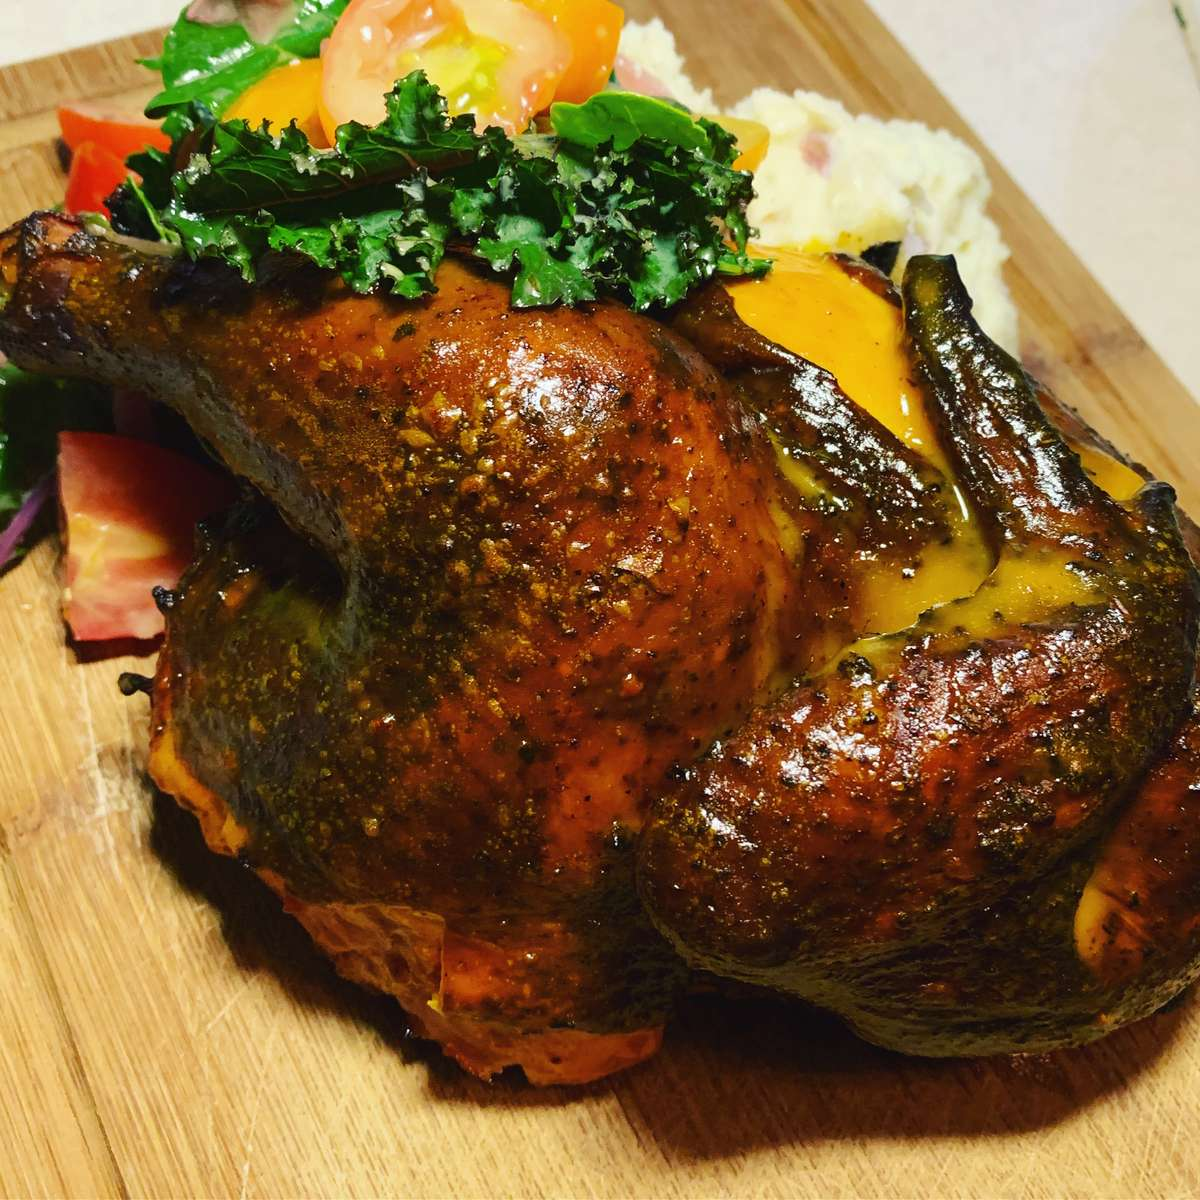 fire-roasted chicken dinner *for 4 people